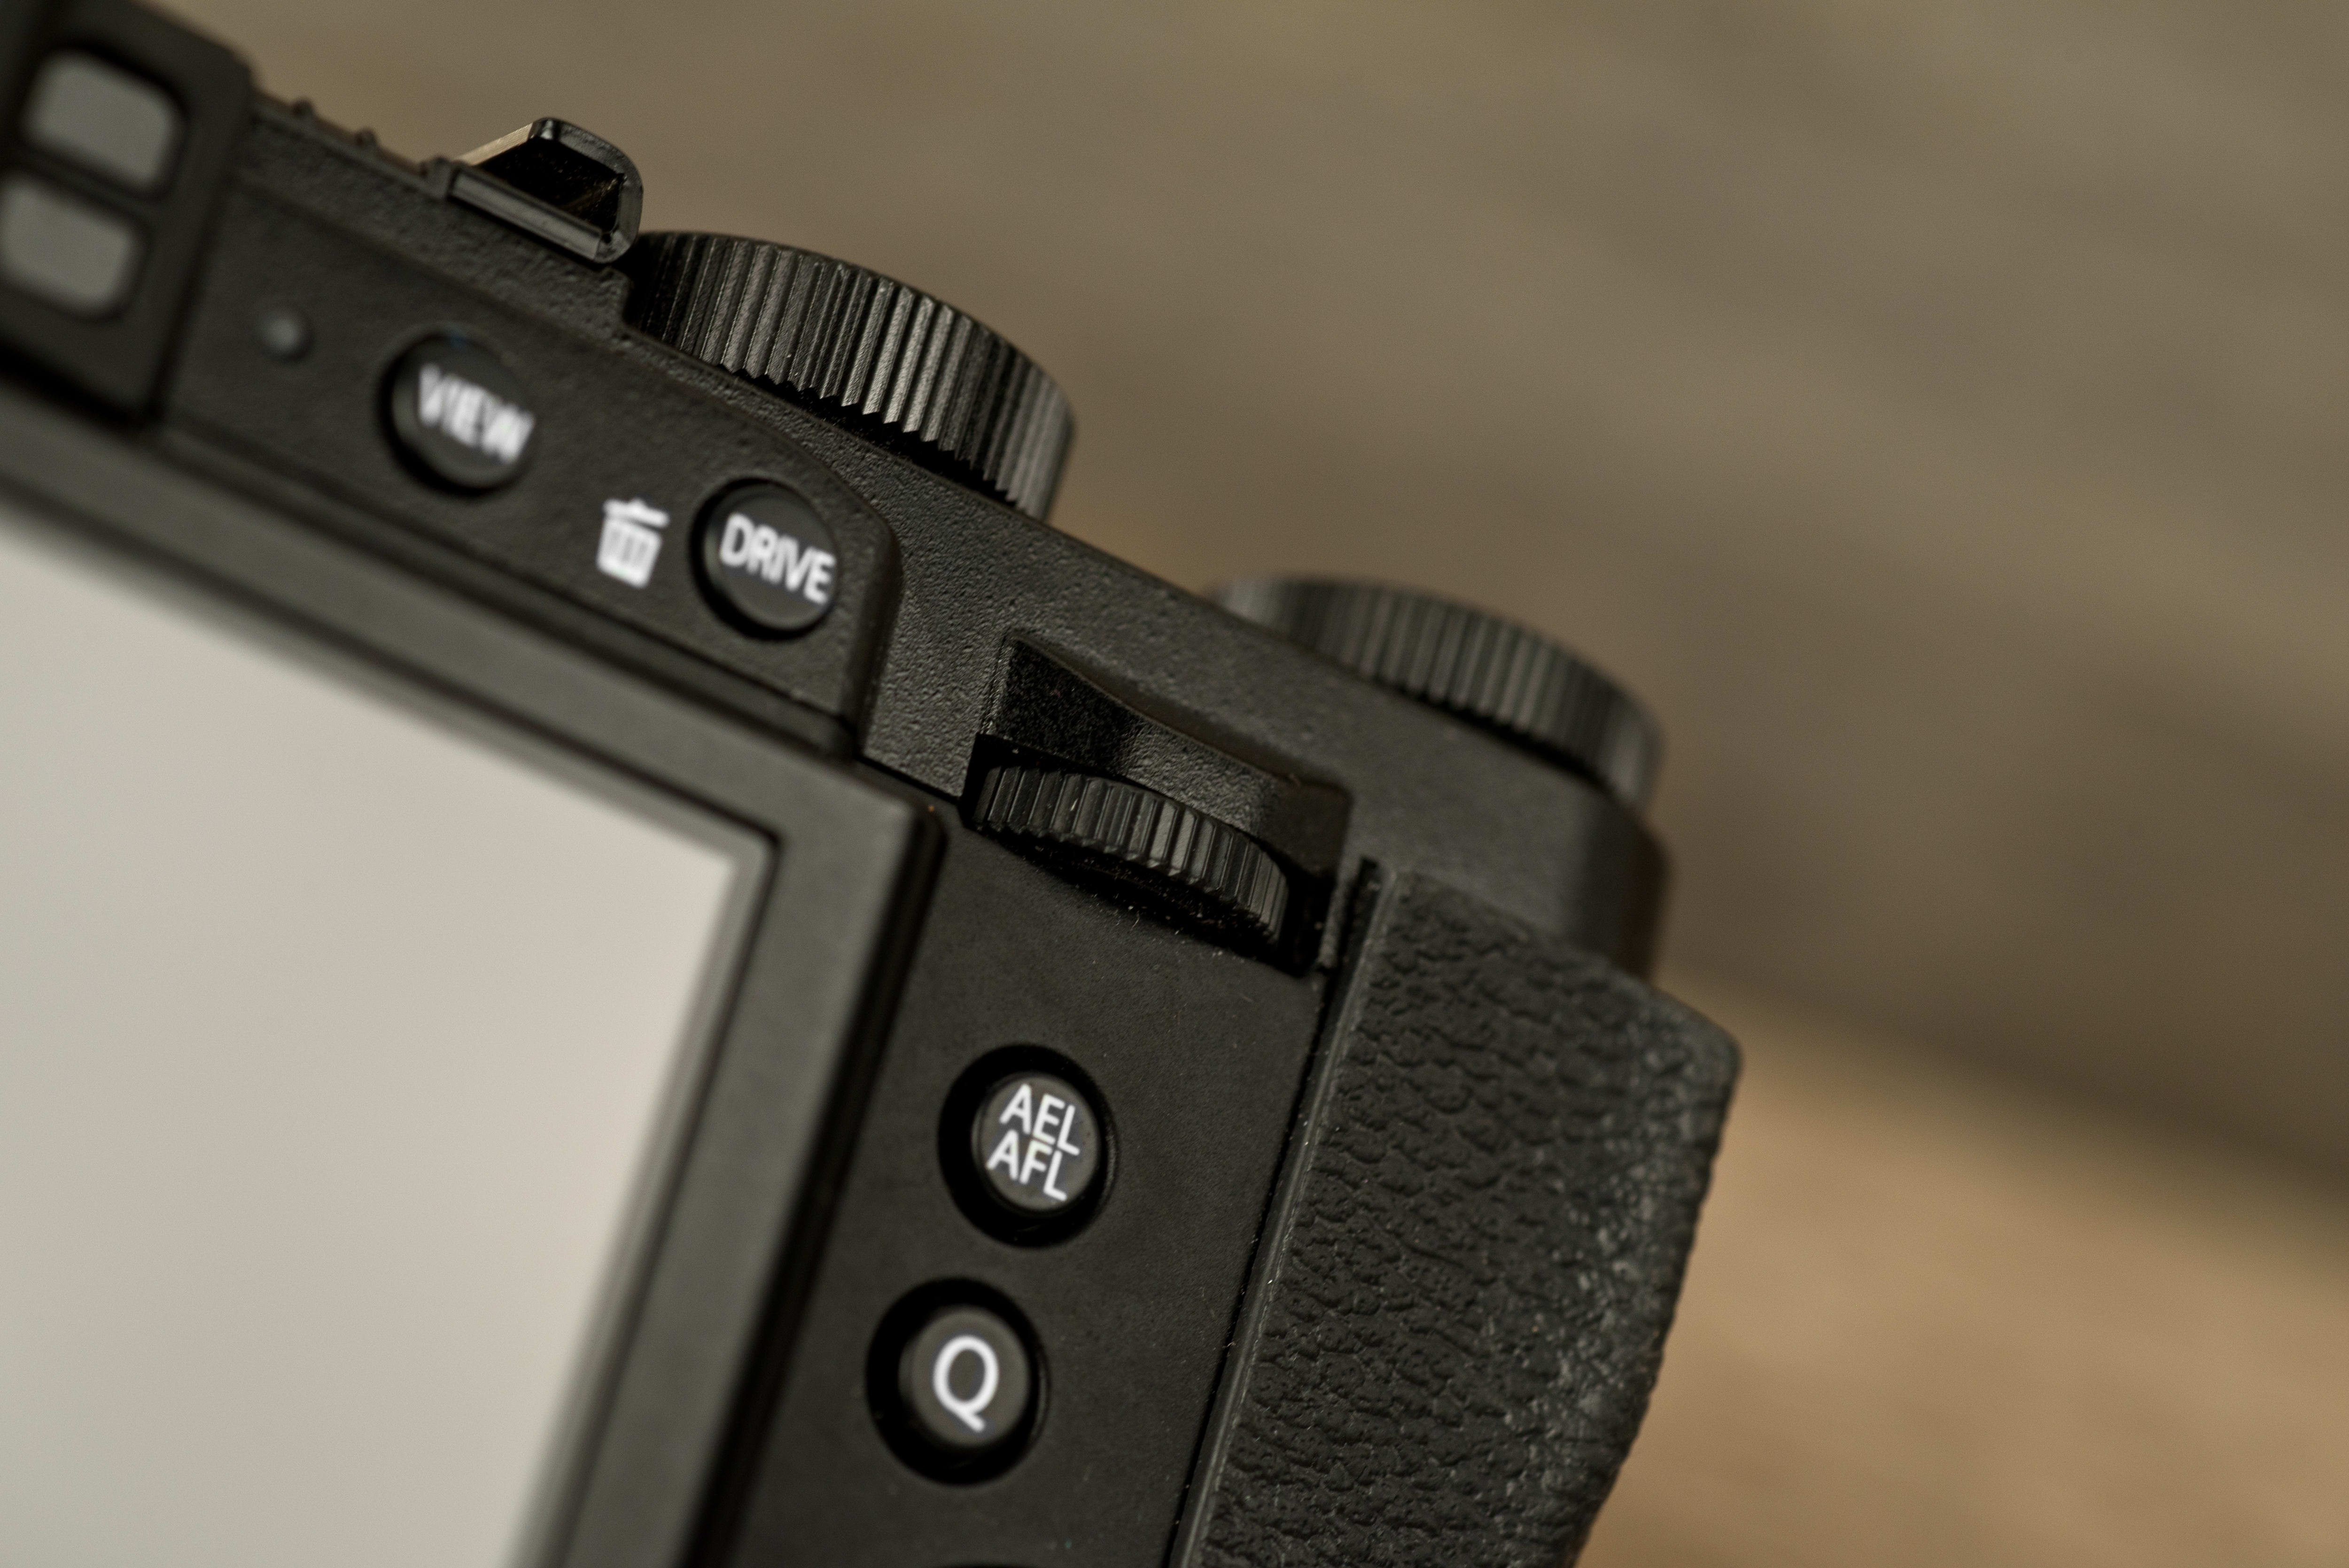 A photo of the Fujifilm X30's rear control dial.